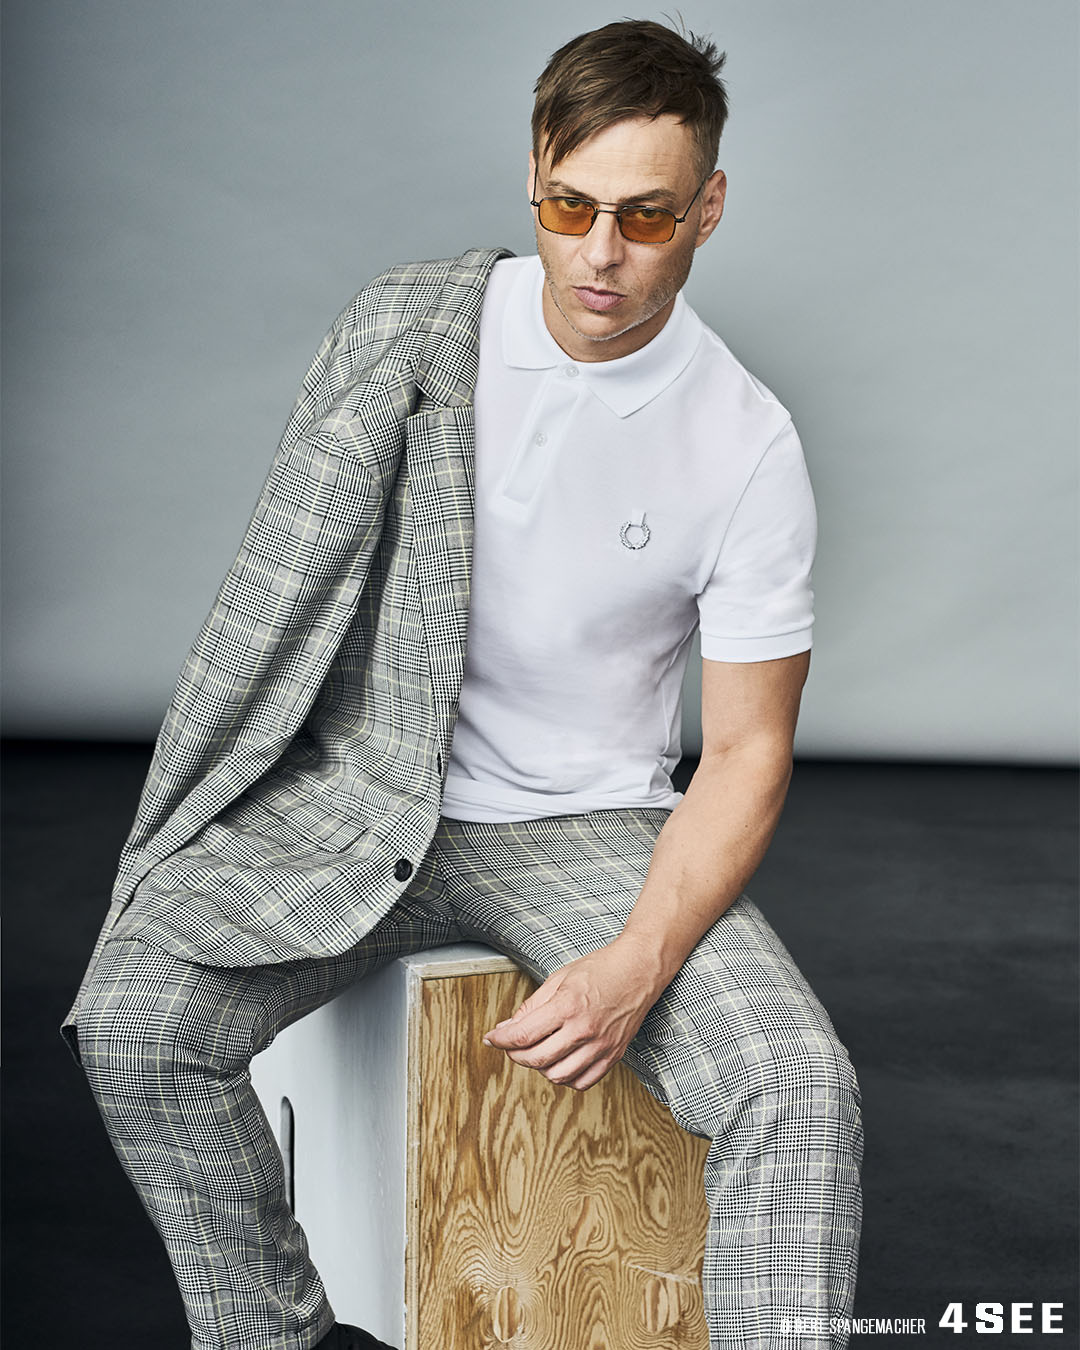 4SEE Interview with Tom Wlaschiha, Photography by Bert Spangemacher, Eyewear by Coblens